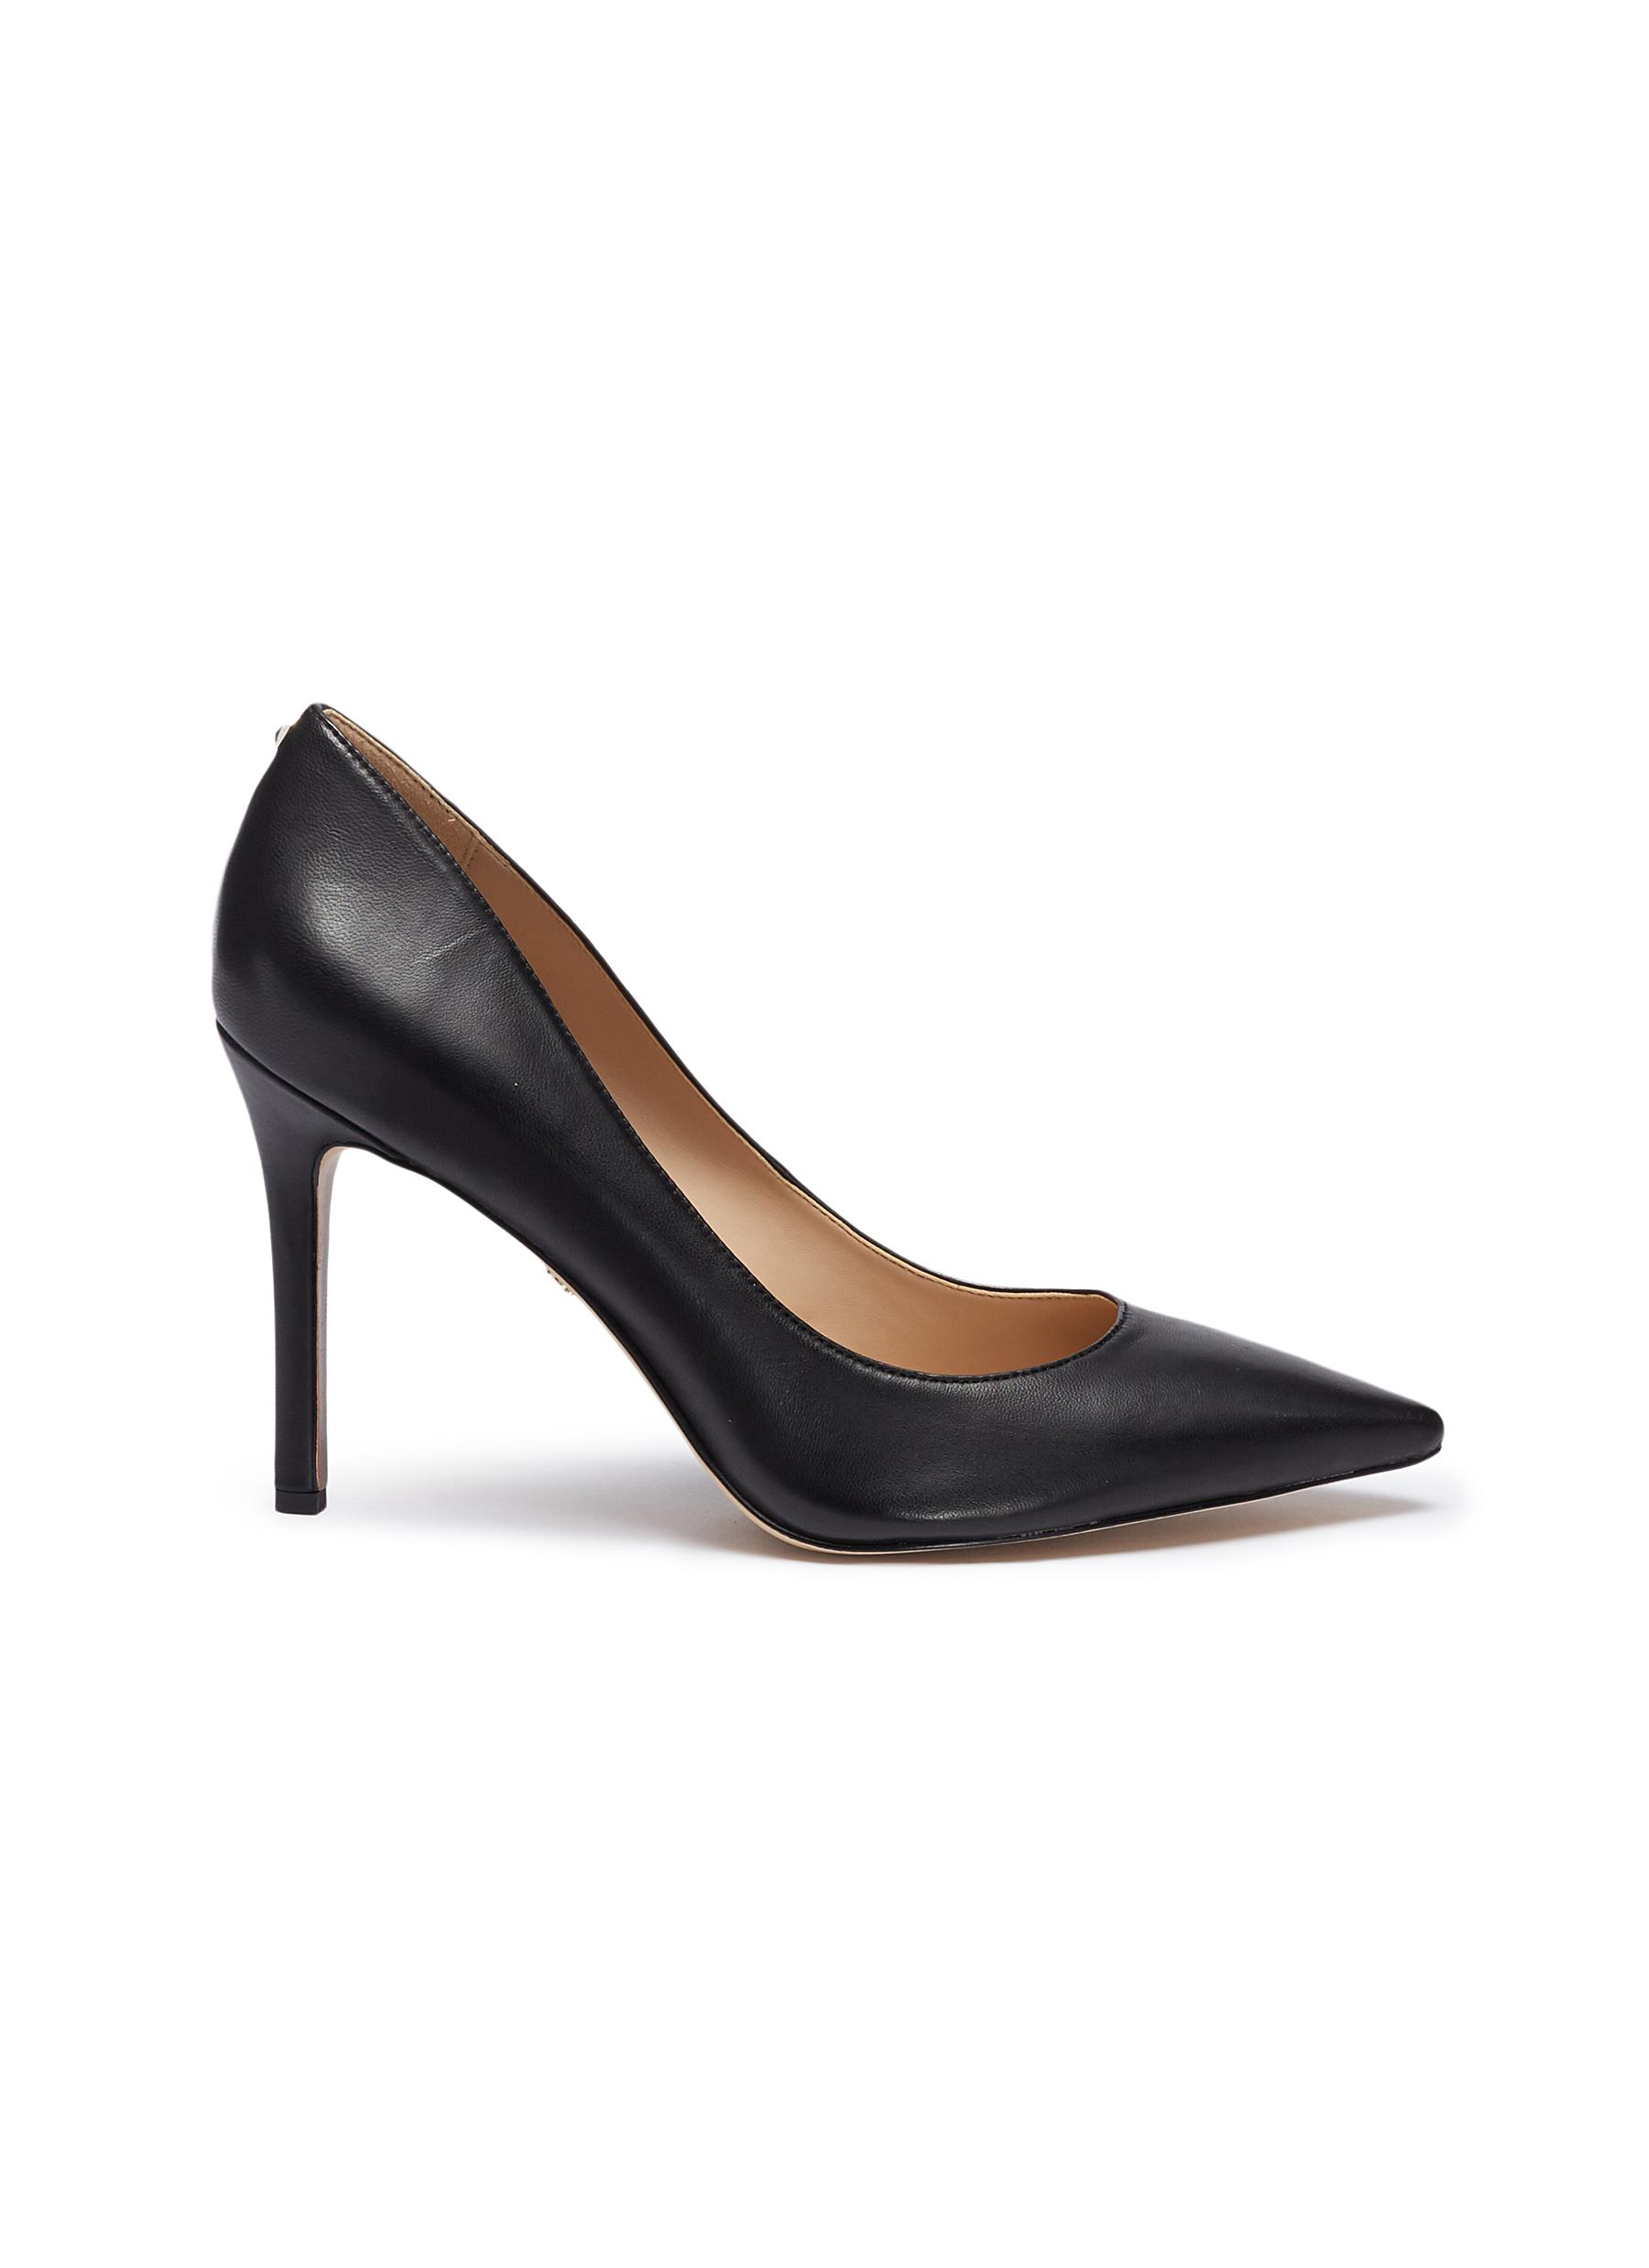 Hazel leather pumps by Sam Edelman